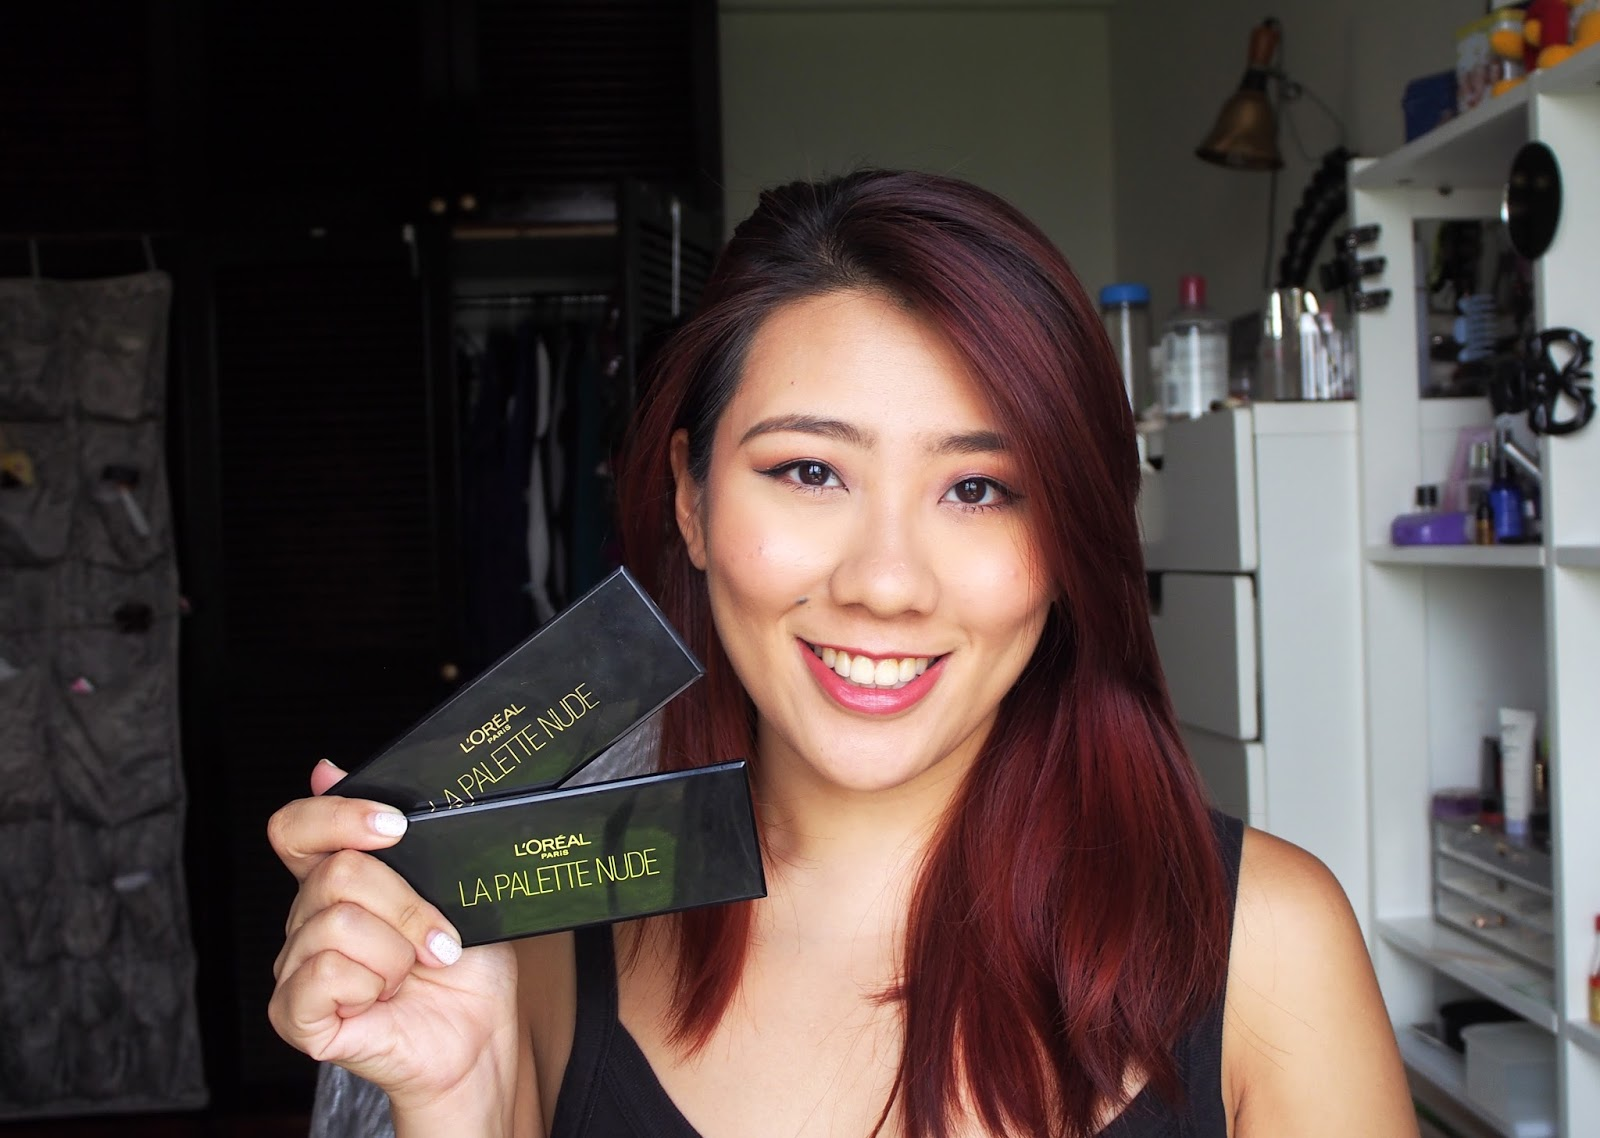 Loreal La Palette Nude Singapore review and swatches